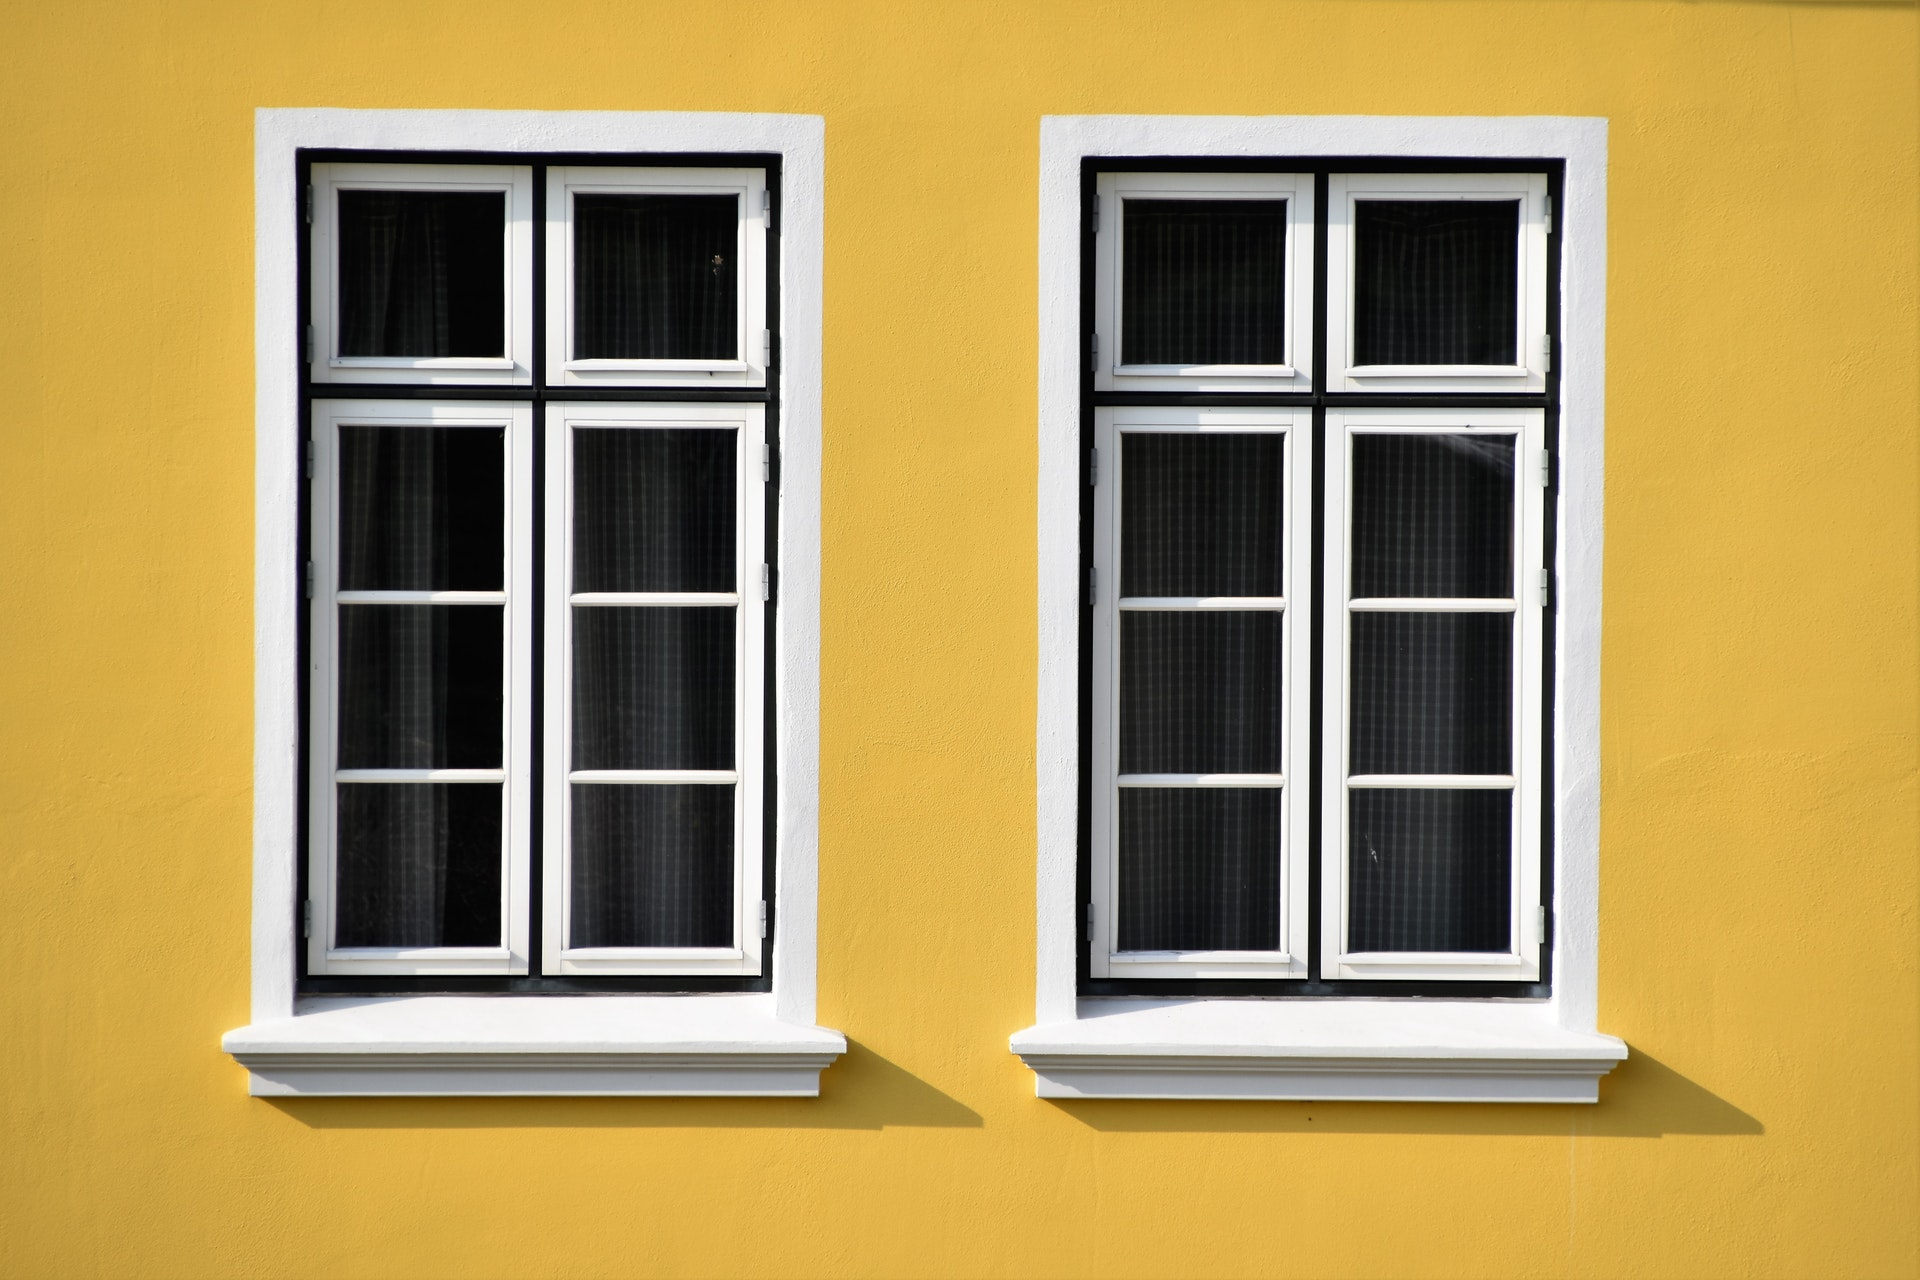 closed-white-wooden-framed-glass-windows-2290609.jpg